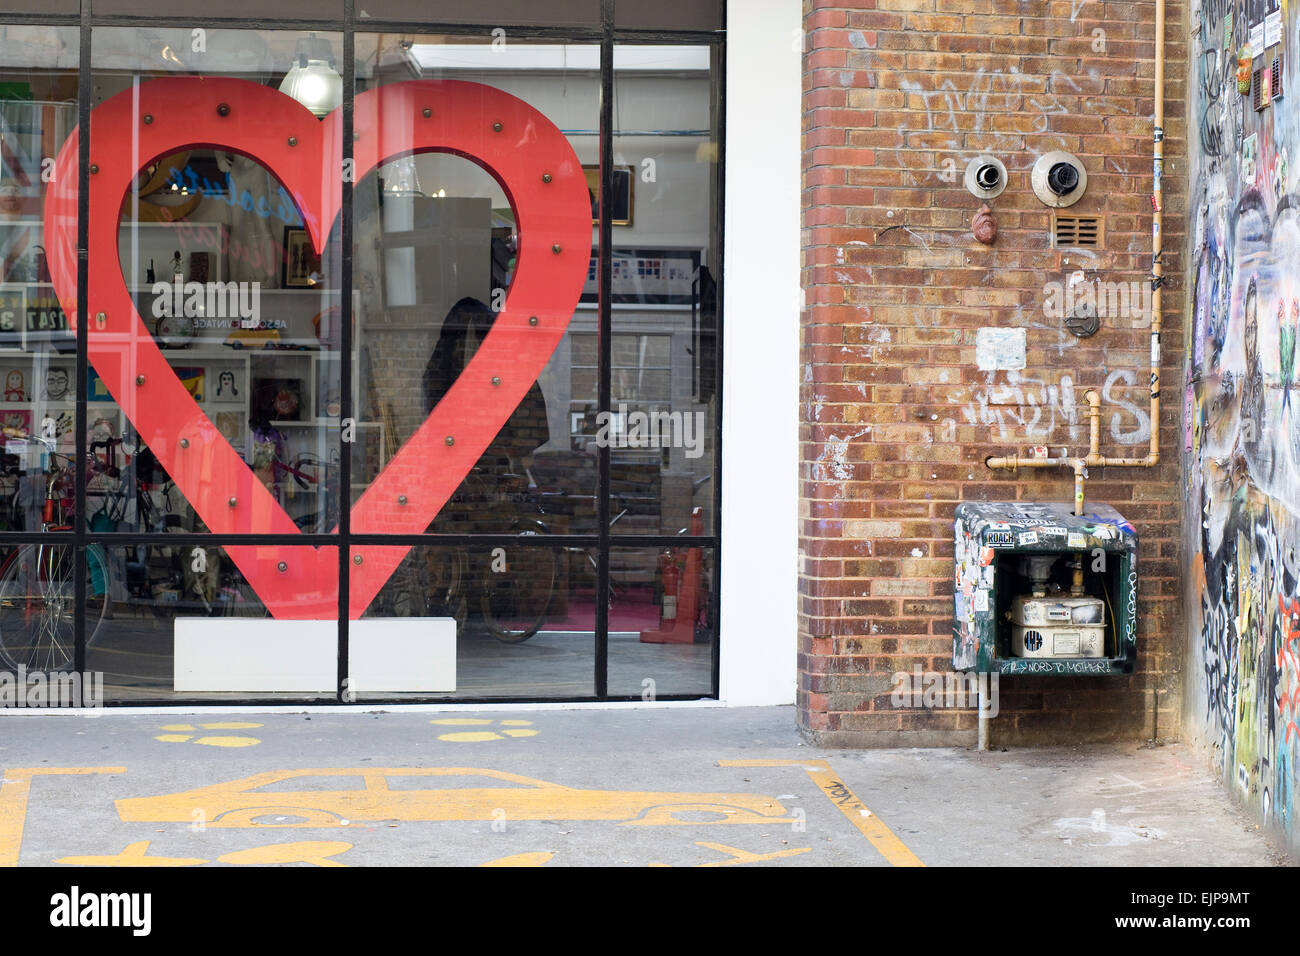 Graffiti wall art modern art giant heart behind glass doors